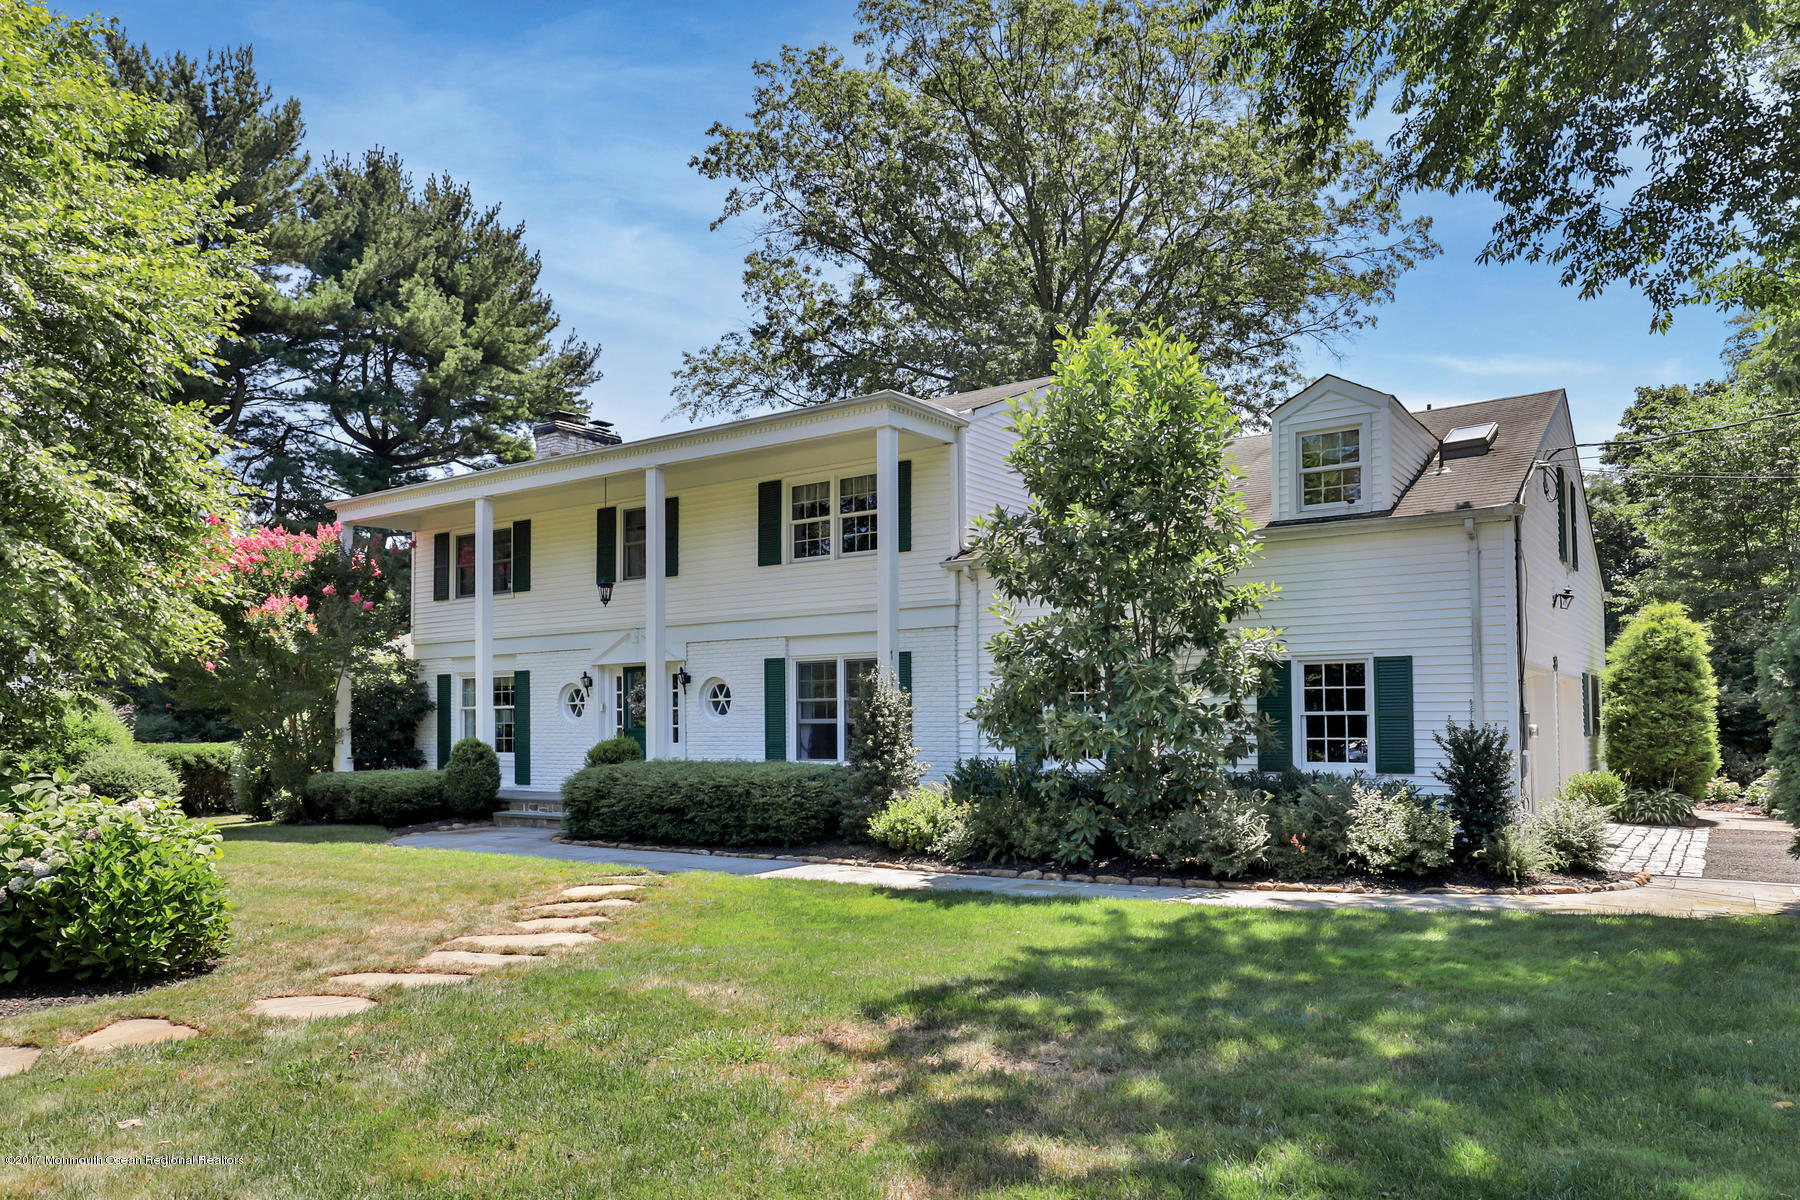 137 RIDGE ROAD, RUMSON, NJ 07760